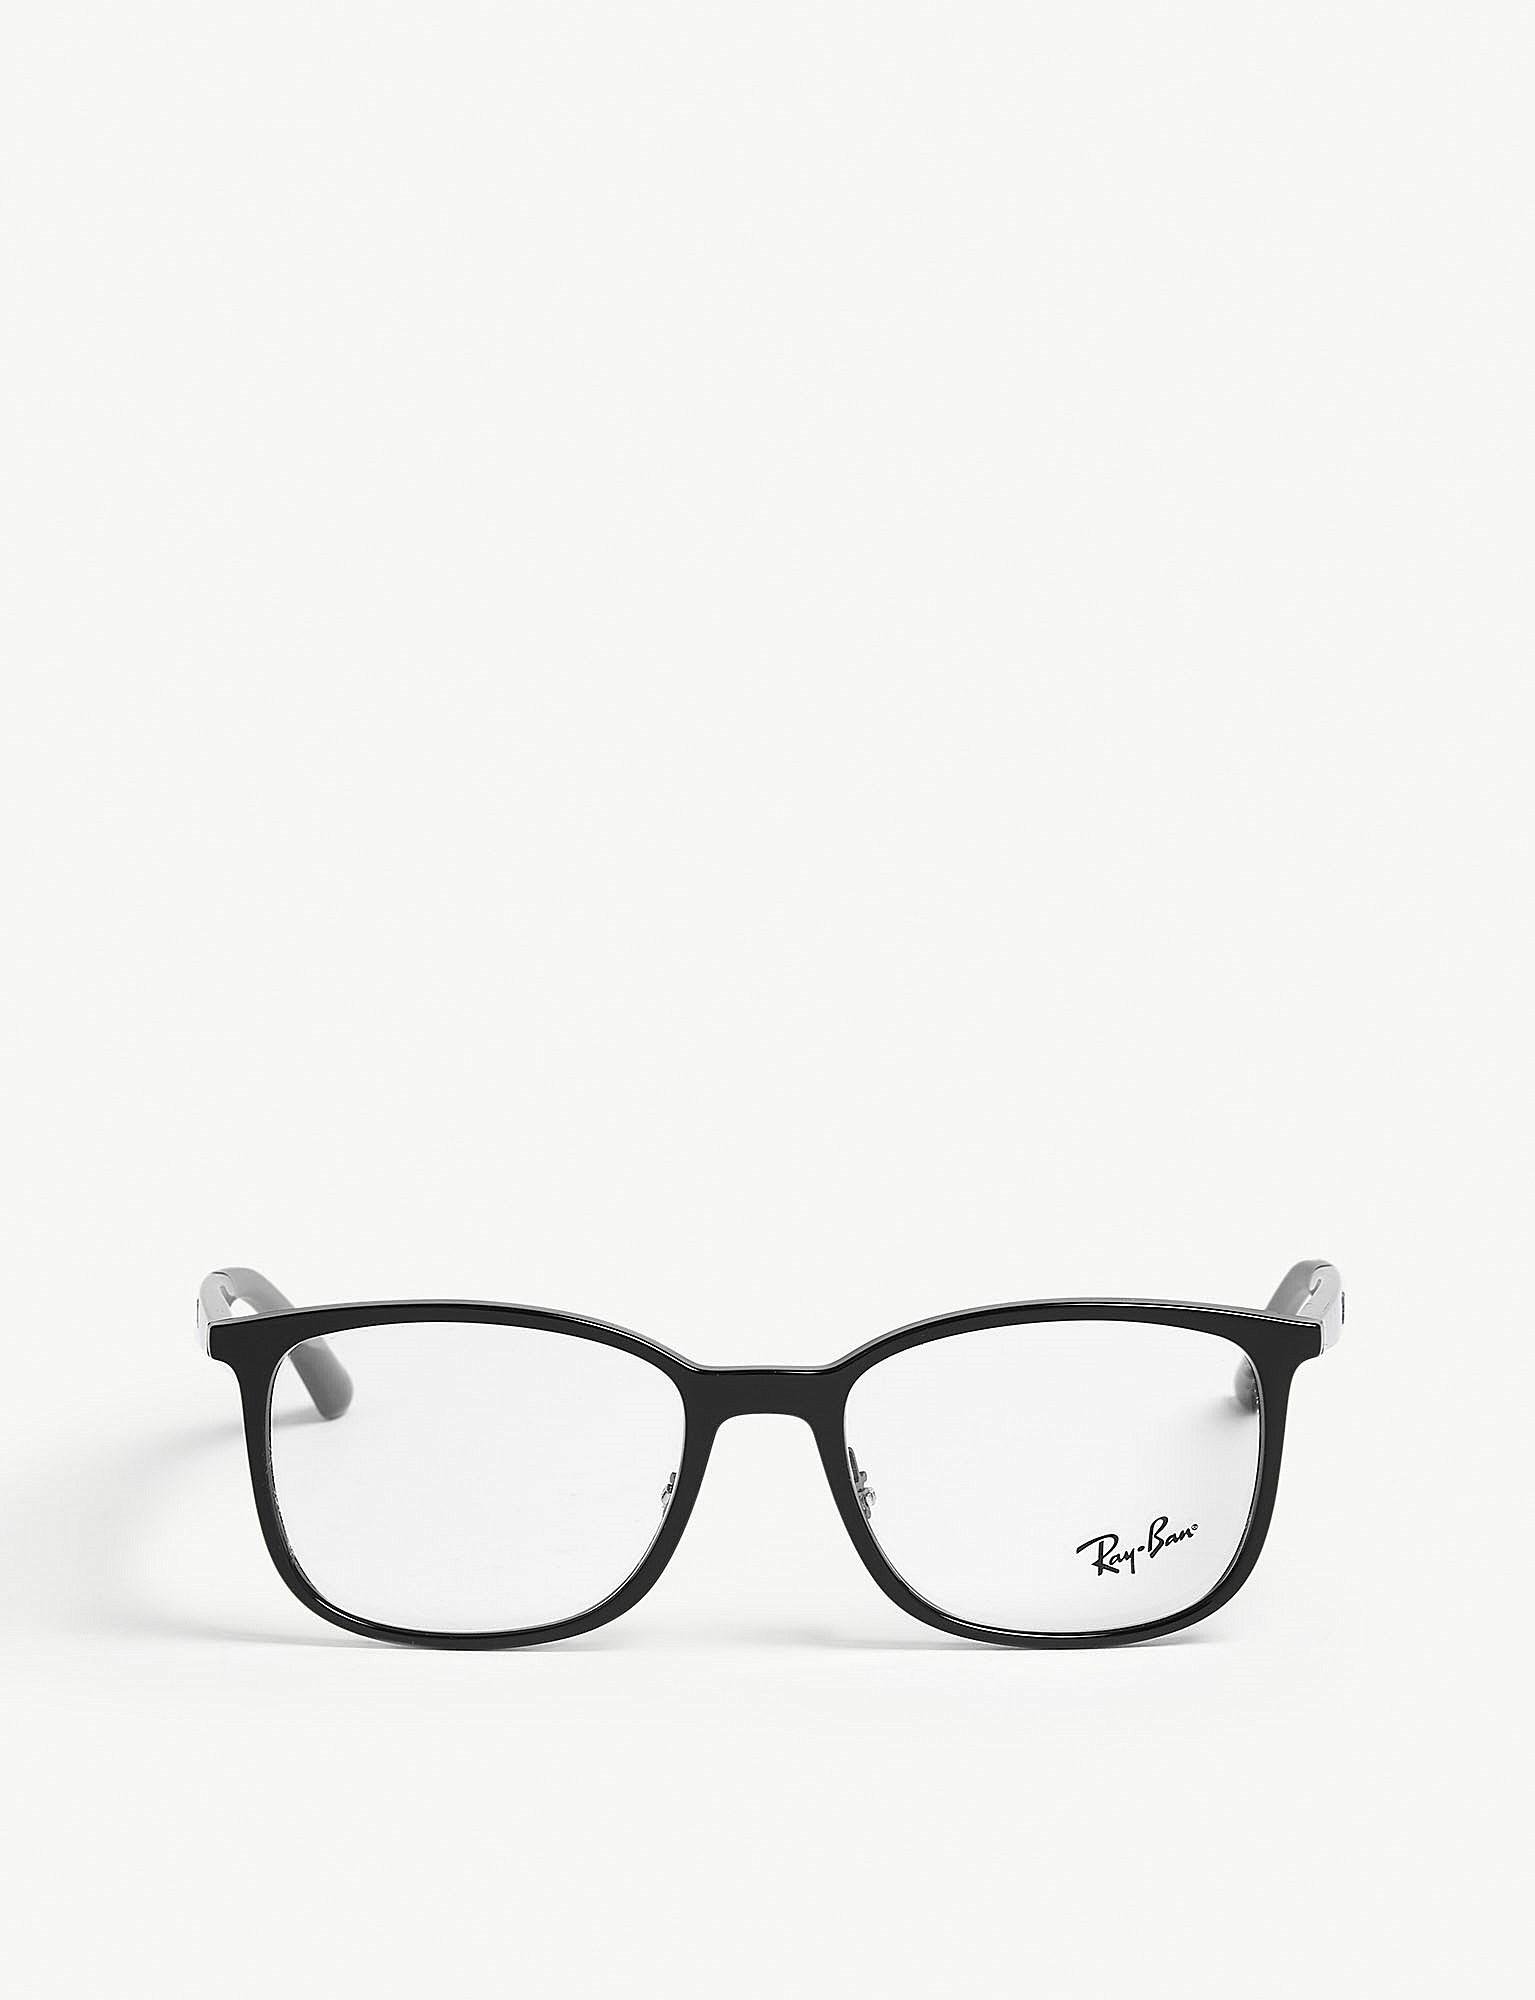 1ec68819ce7 Lyst - Ray-Ban Rb7142 Square-frame Optical Glasses in Black for Men